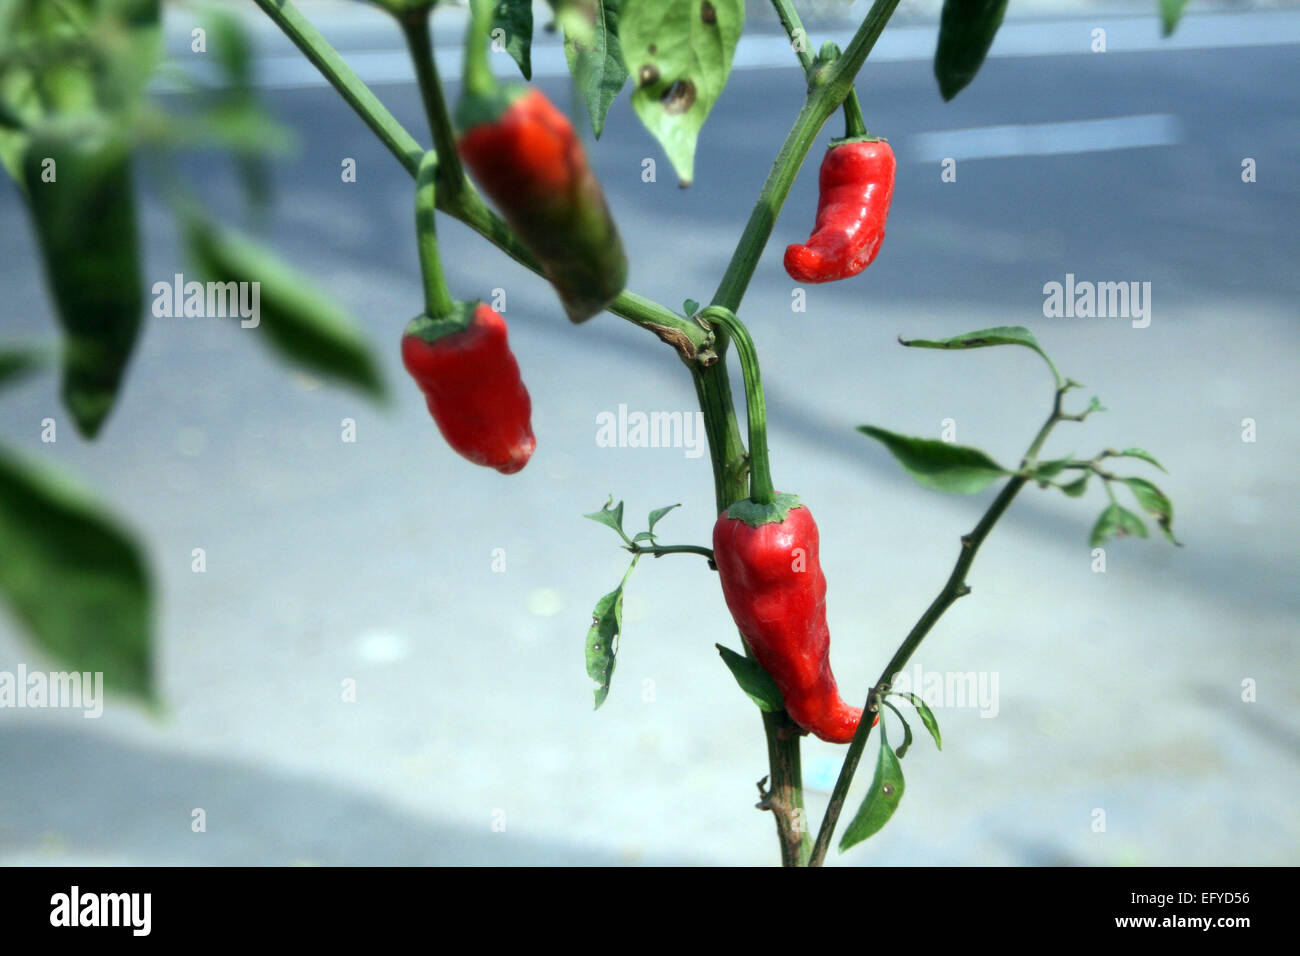 Red and green hot chili peppers on a tree Stock Photo